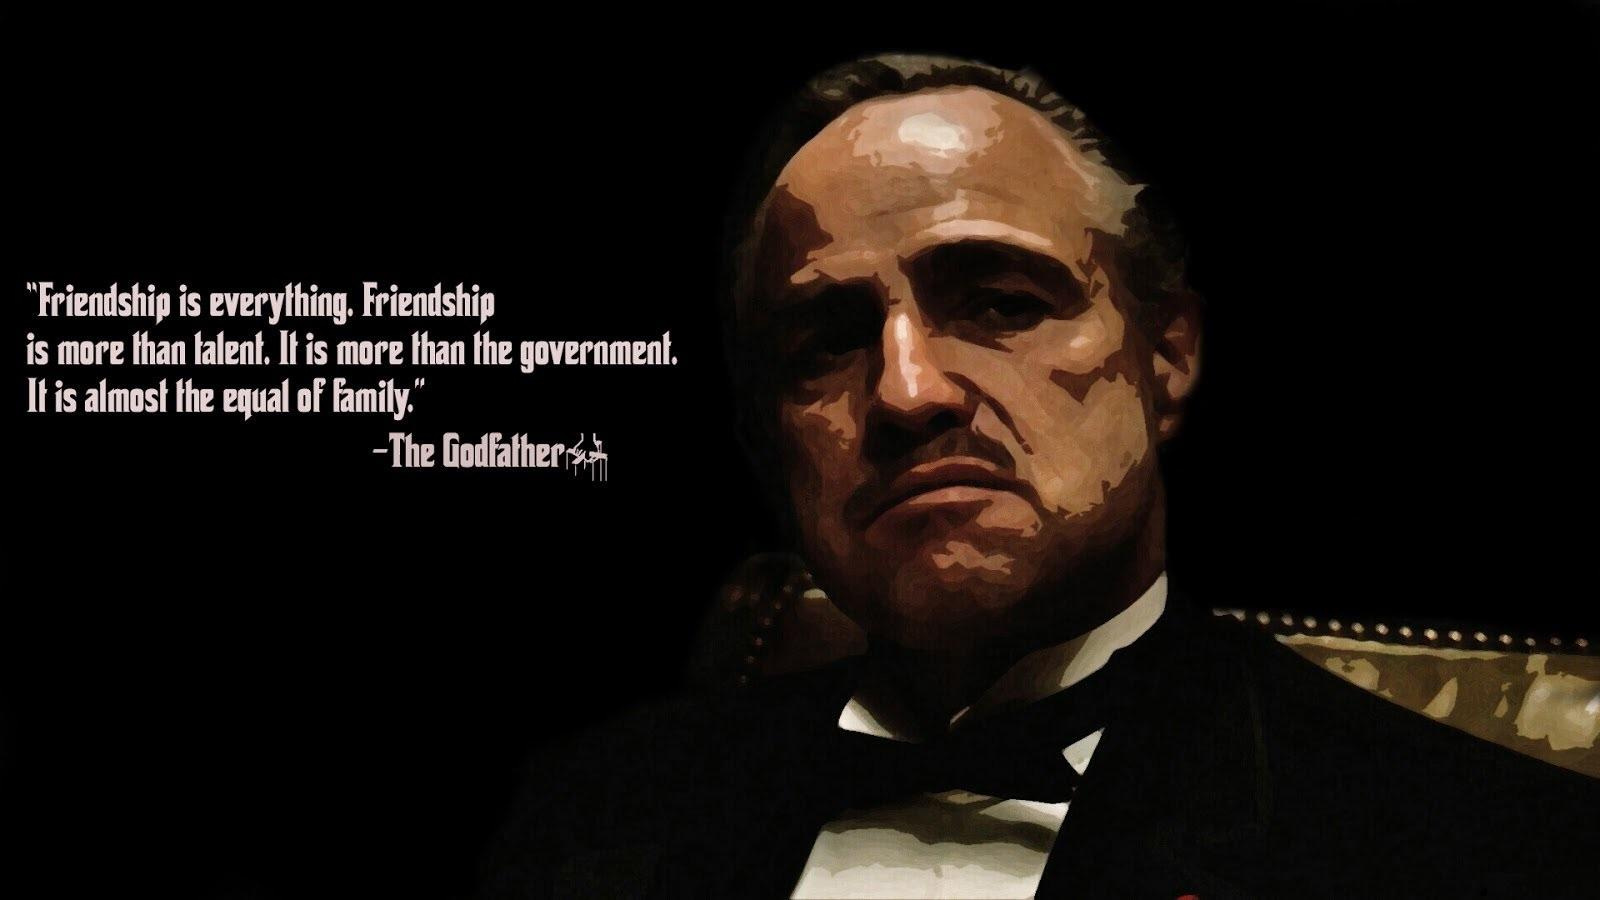 """Friendship is everything. Friendship is more than talent. It is more than the government. It is almost like equal of family."" – The Godfather [1600*900]"